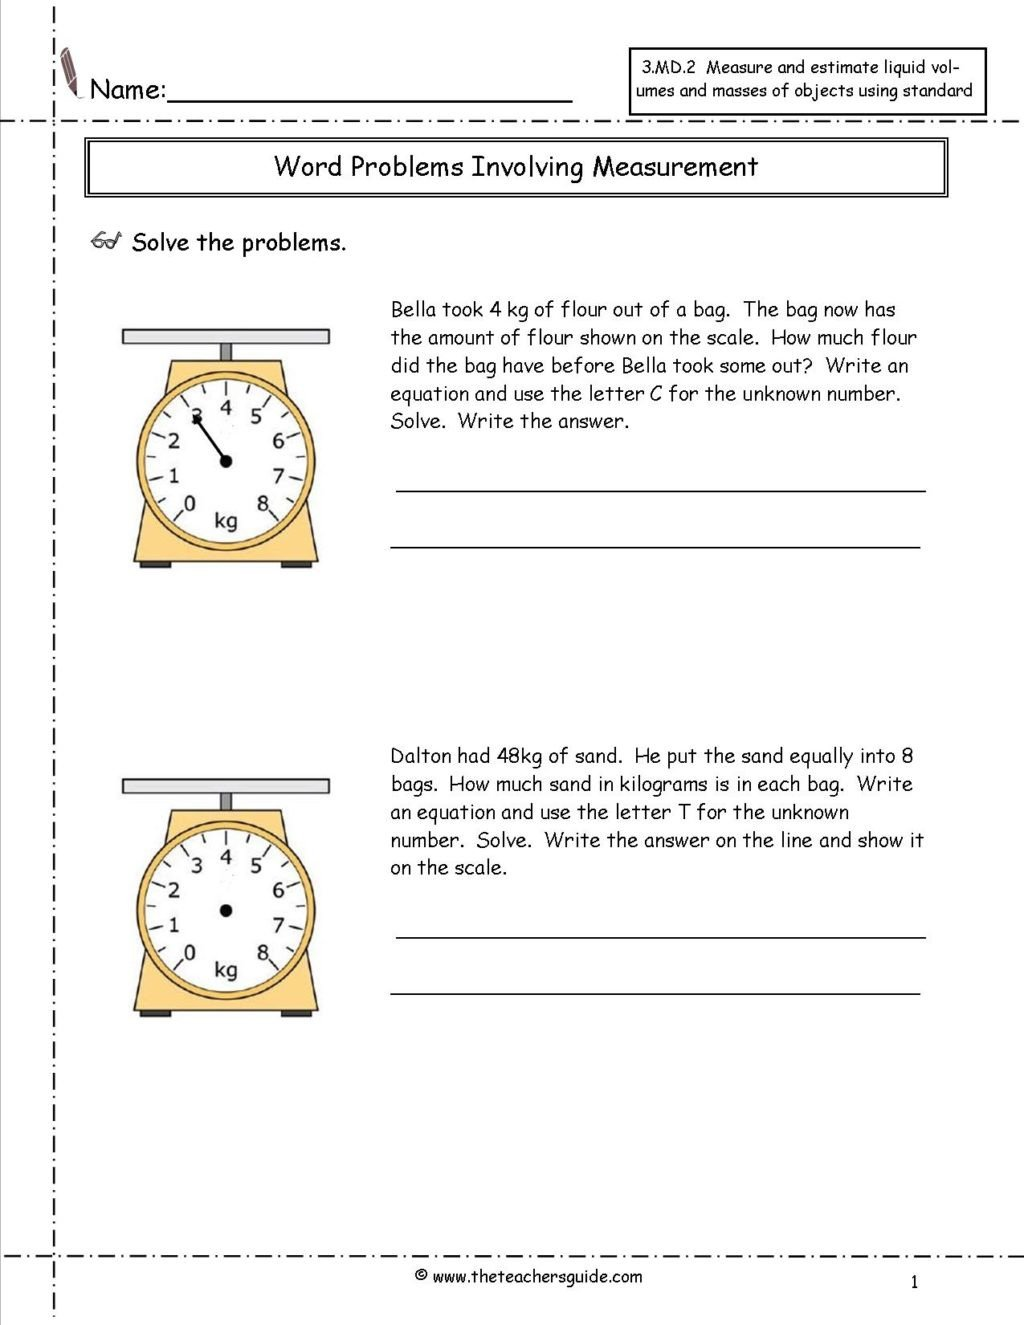 measurement worksheets grade kgwordproblems awesome picture inspirations free printable caps 1024x1325